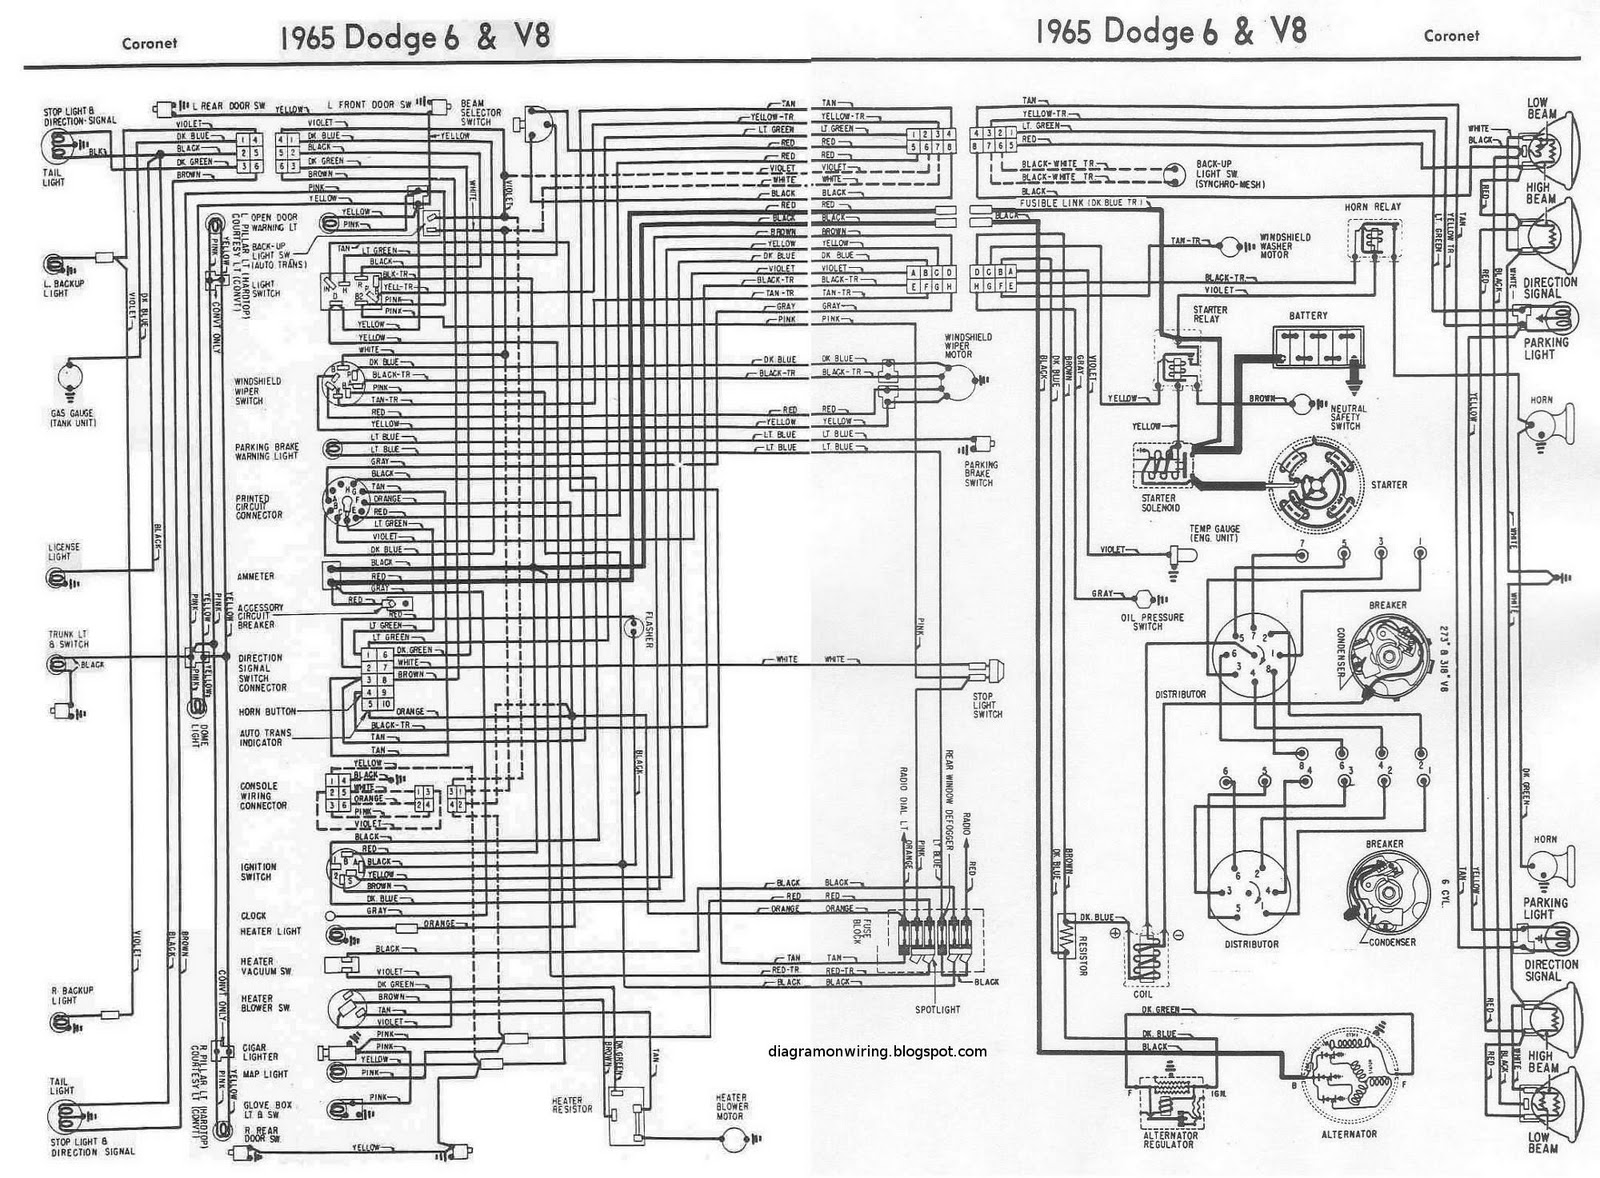 1965+Dodge+6+and+V8+Coronet+Complete+Electrical+Wiring+Diagram dodge 6 and v8 coronet 1965 complete wiring diagram all about 1970 dodge coronet wiring diagram at soozxer.org